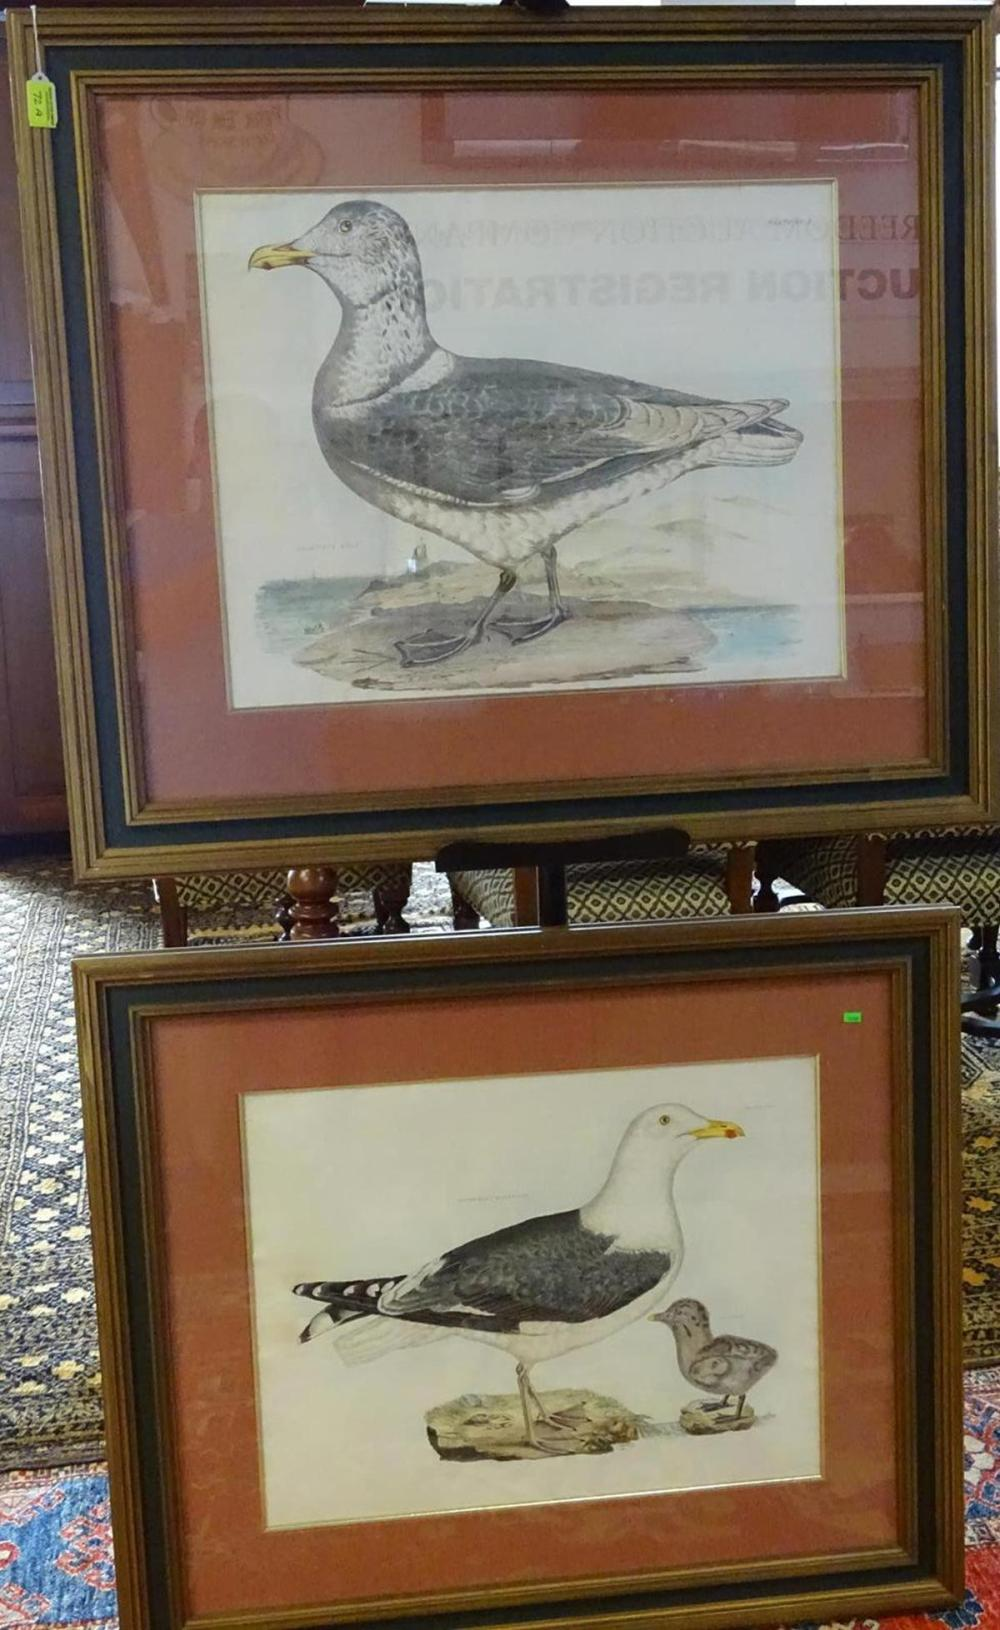 JOHN SELBY PRIDEAUX HAND COLORED ETCHINGS